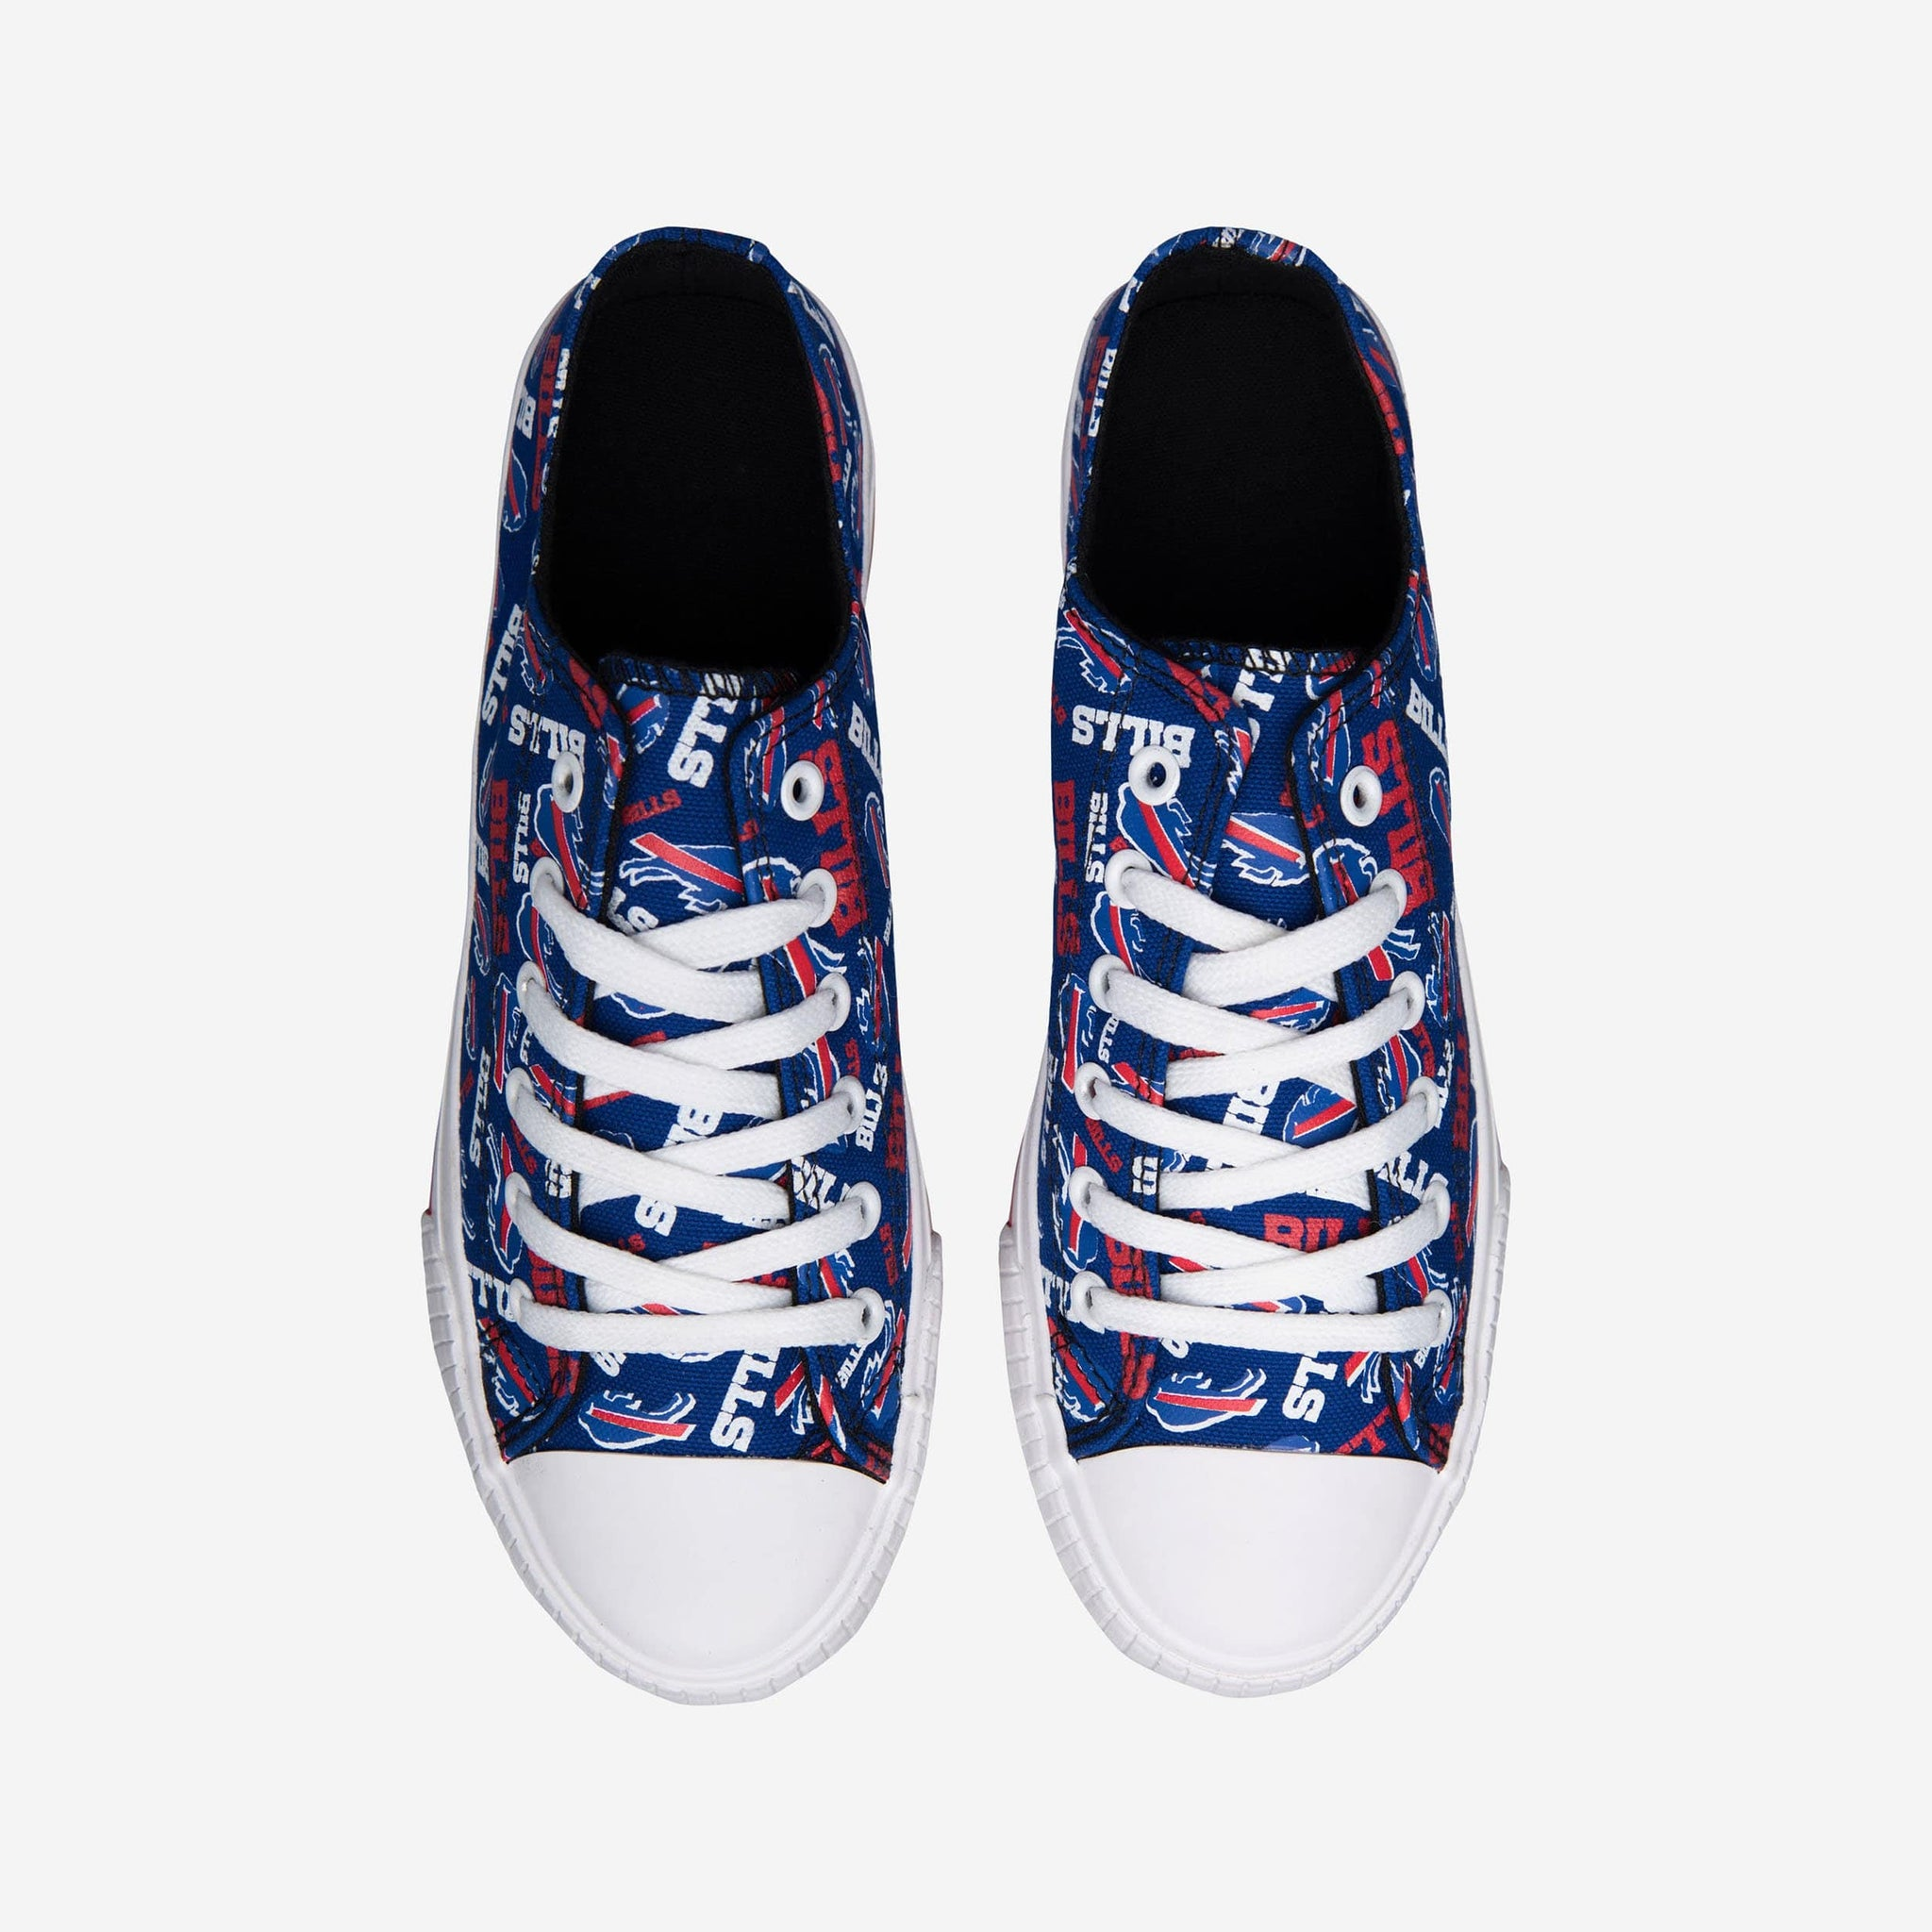 Buffalo Bills Womens Low Top Repeat Print Canvas Shoe